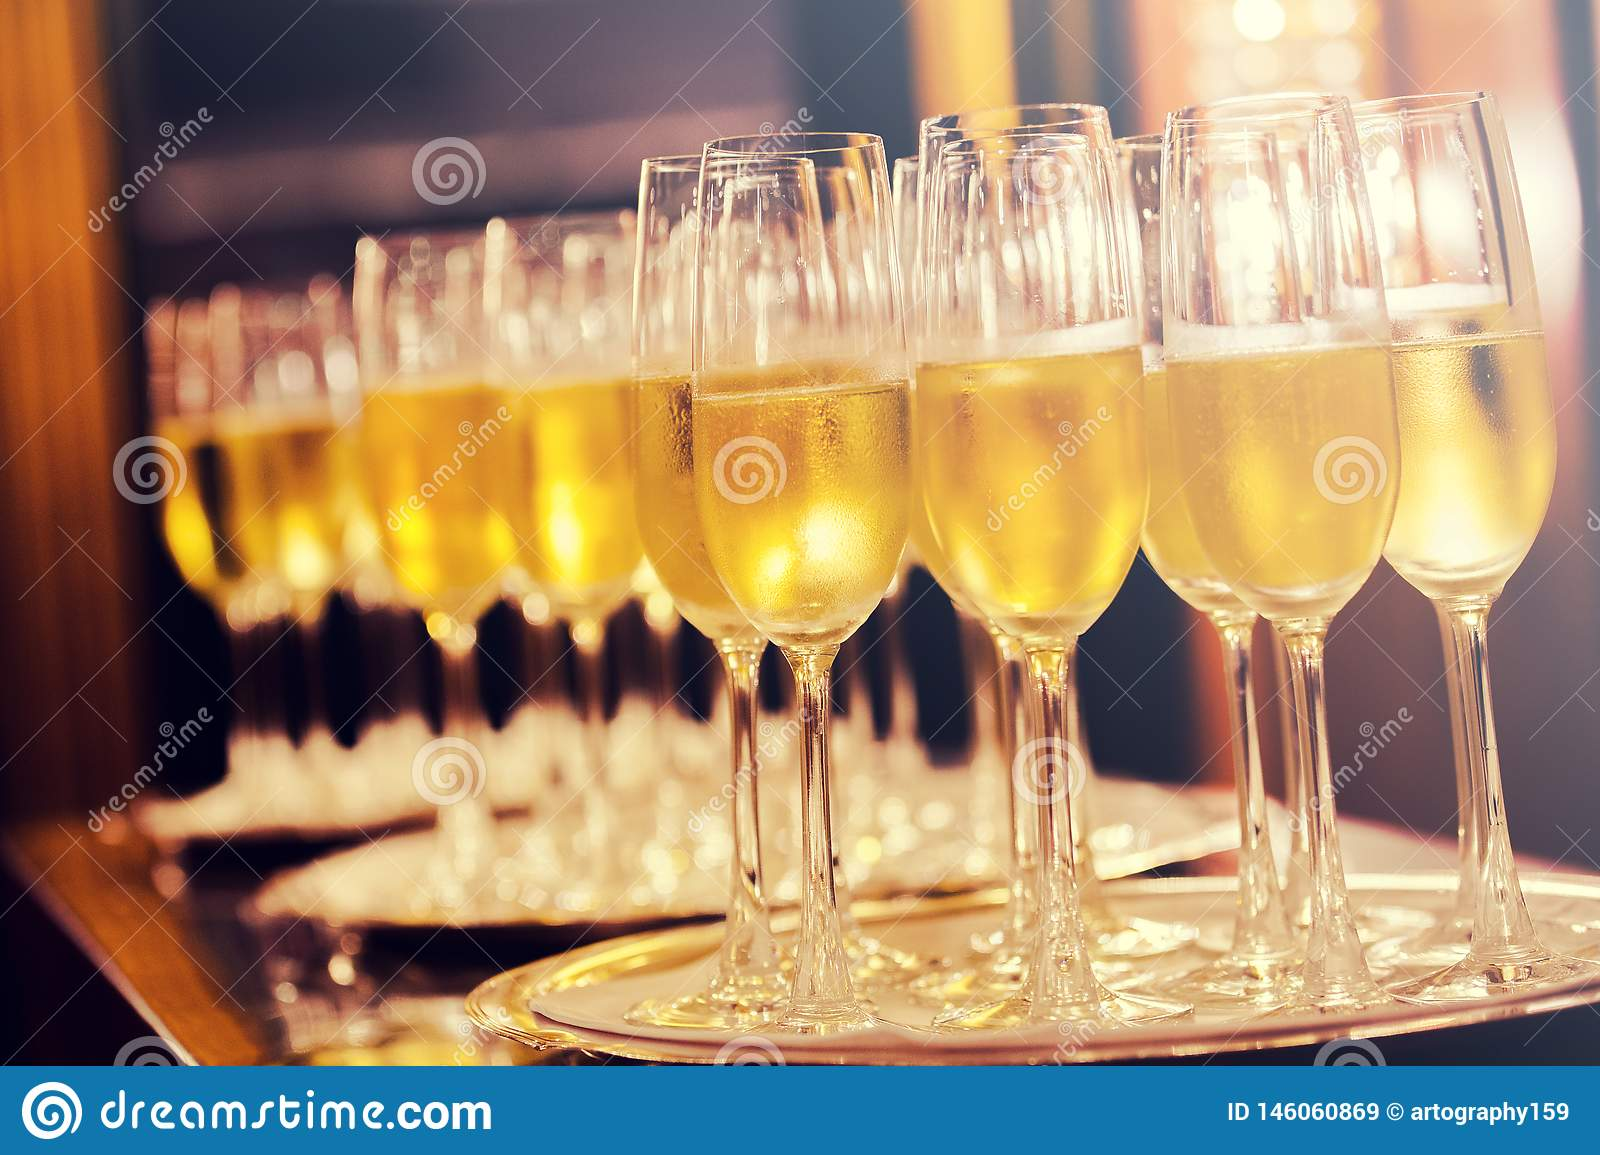 Champagne glasses background. Party concept.